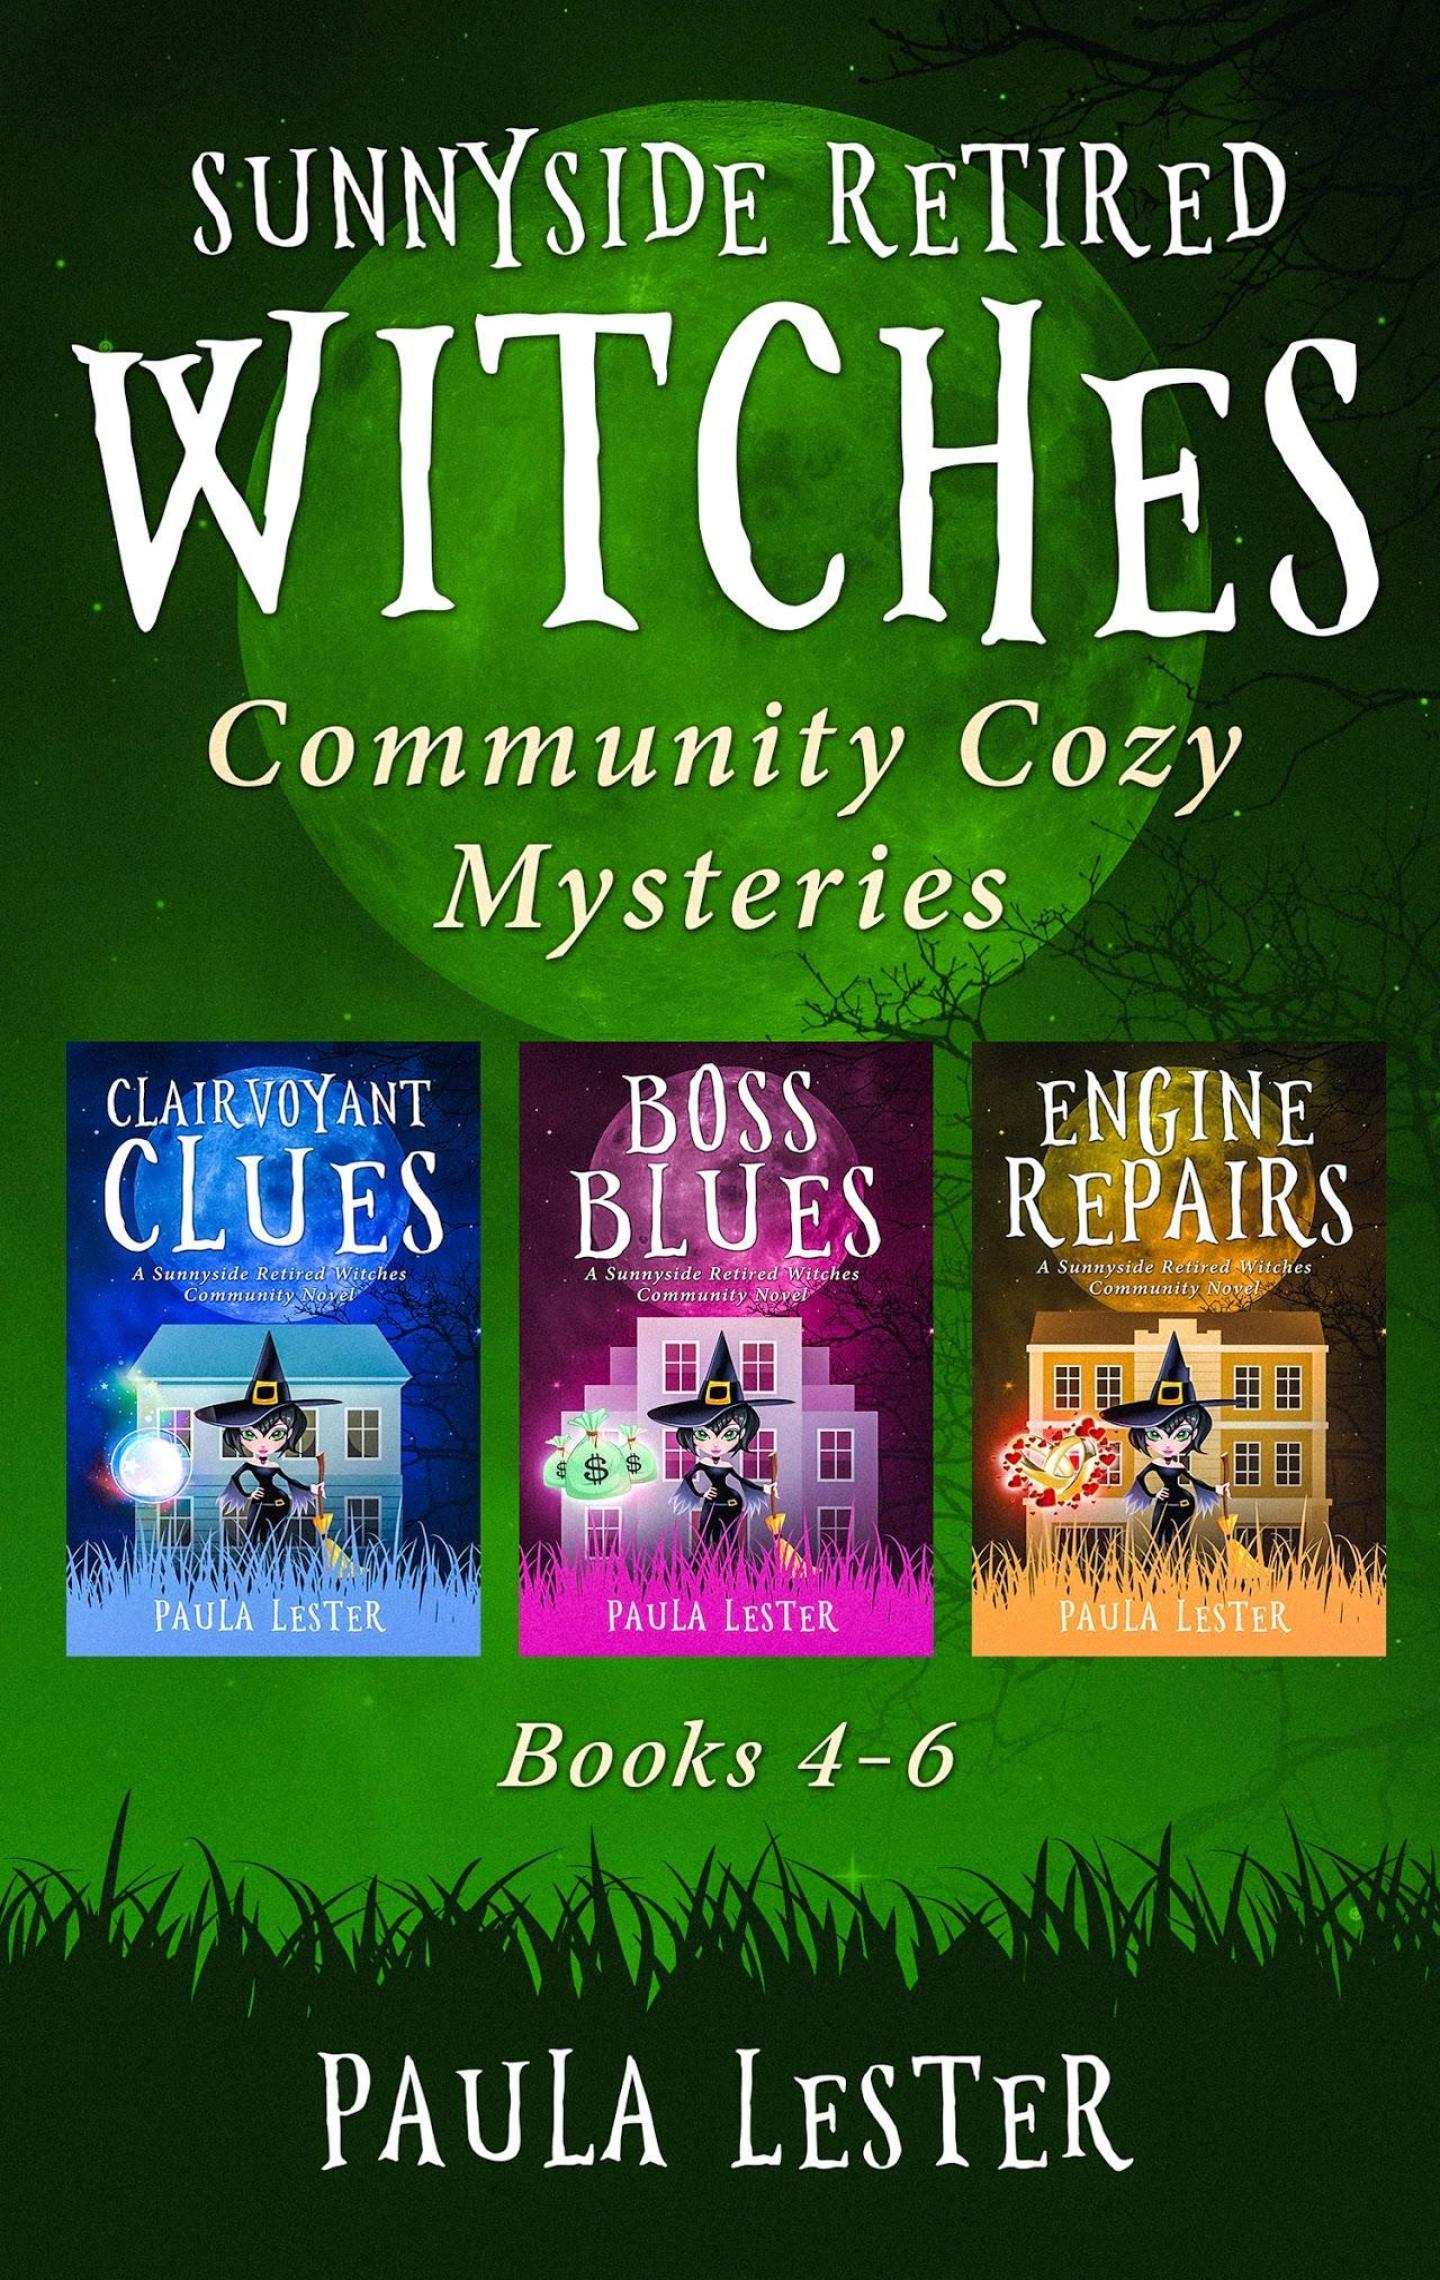 Sunnyside Retired Witches Community Series Boxset 2